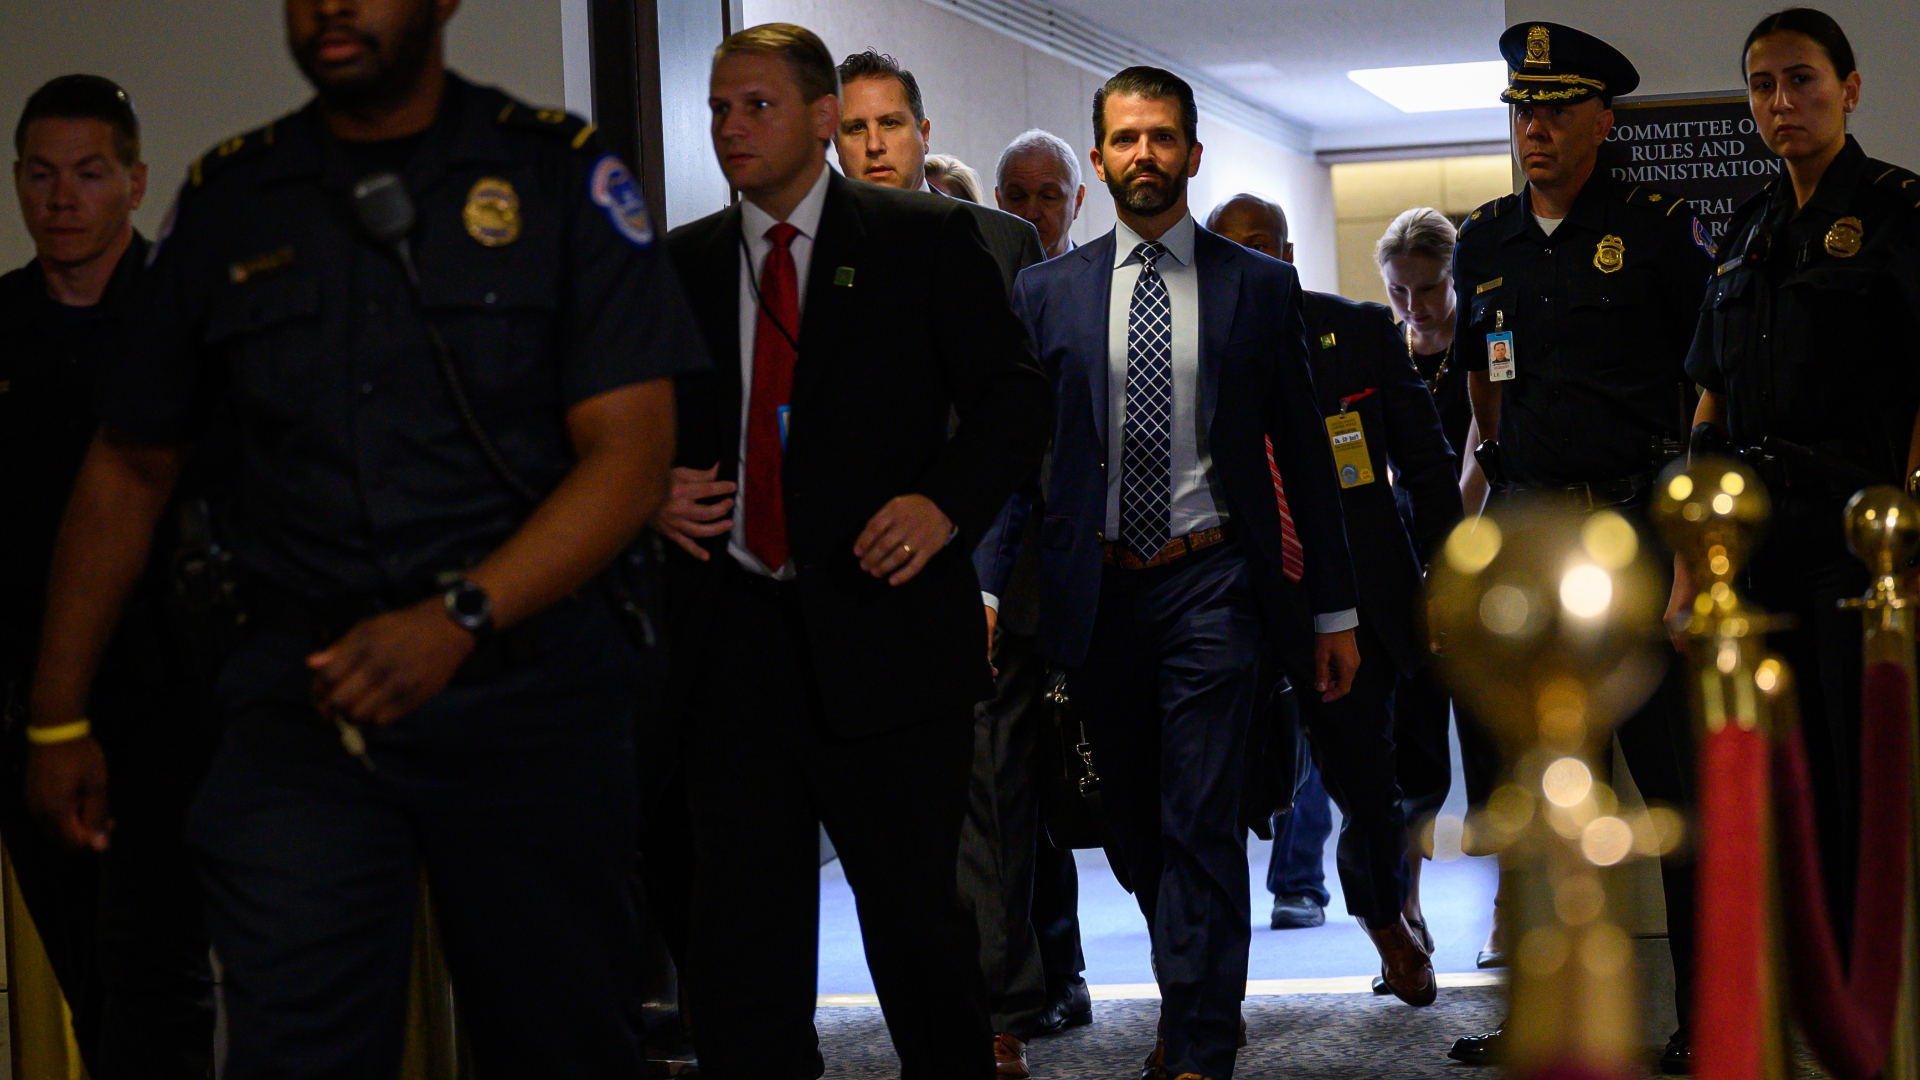 Trump Jr. says he's 'not at all' worried about perjury charges despite Democrats' suspicions